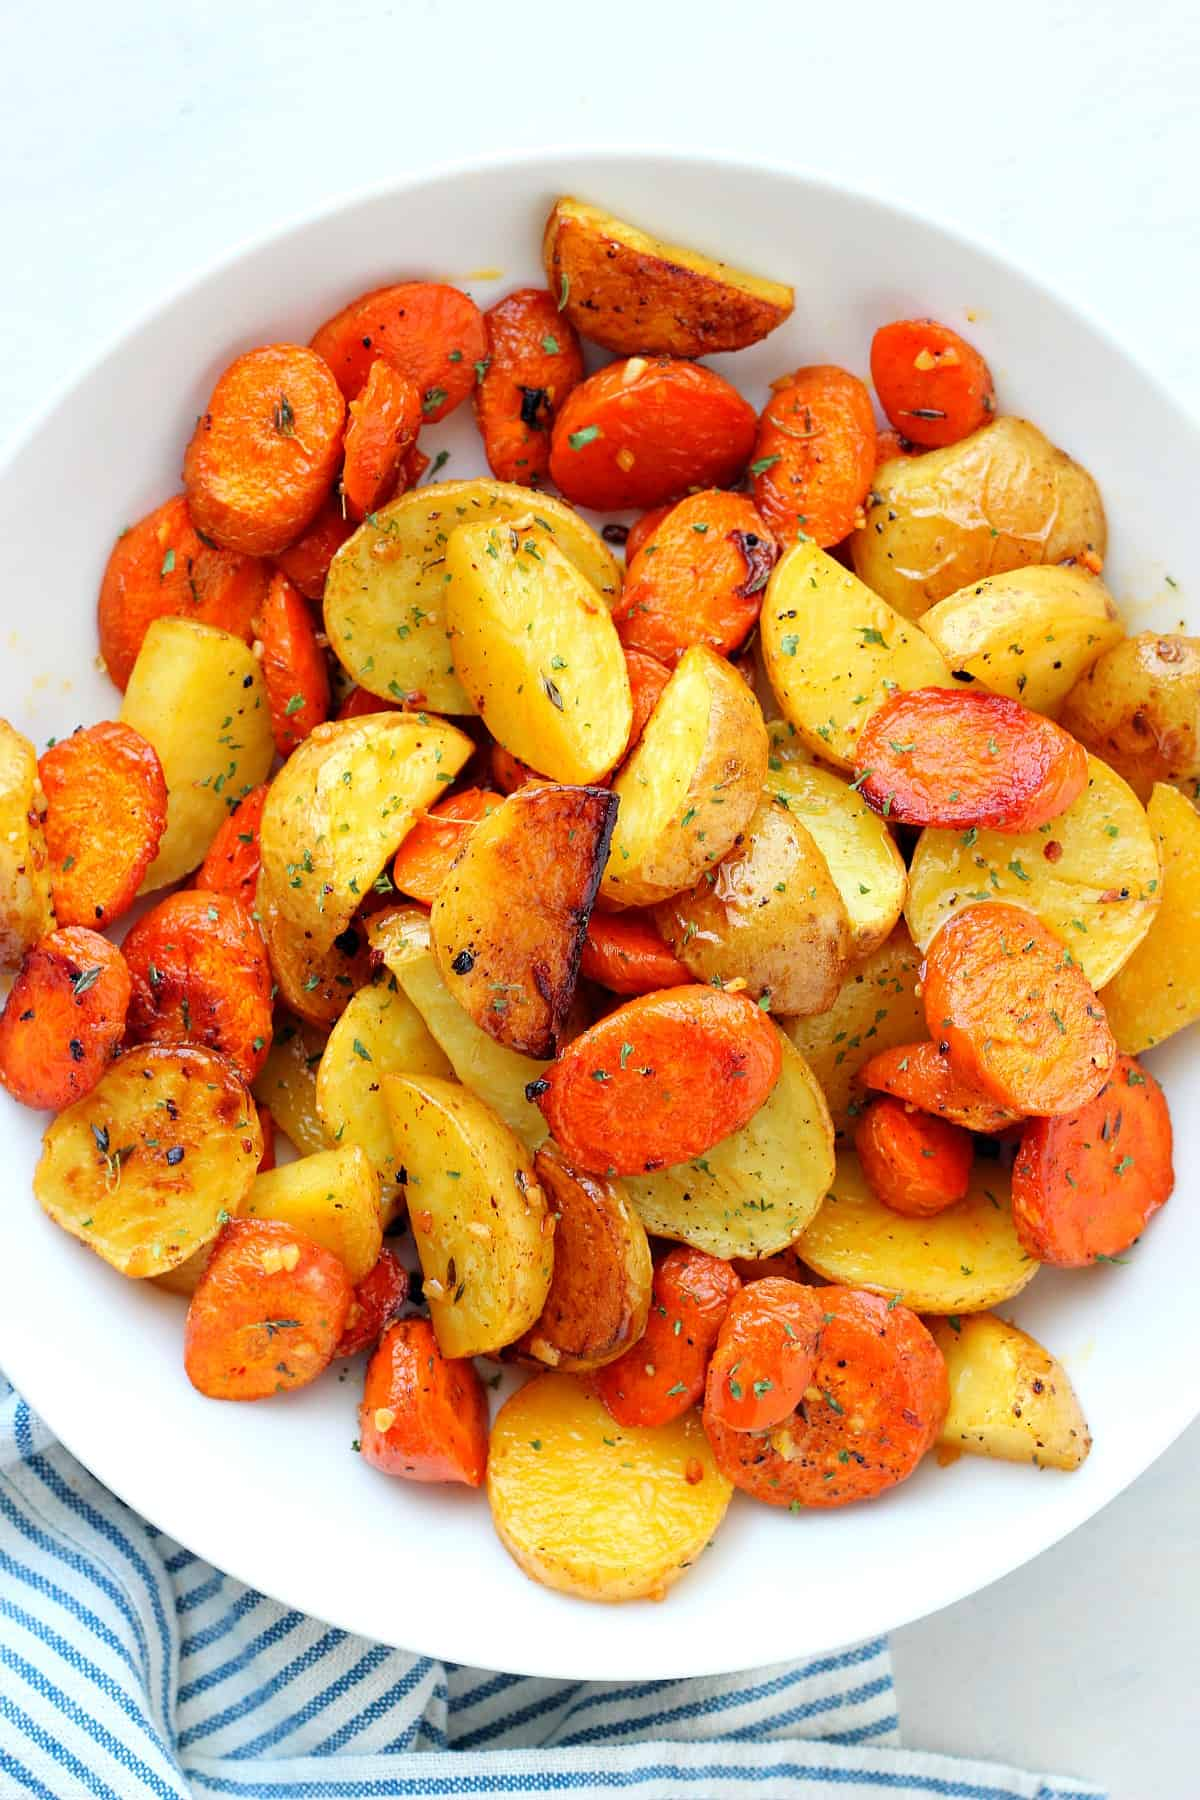 roasted potatoes and carrots D Roasted Potatoes and Carrots